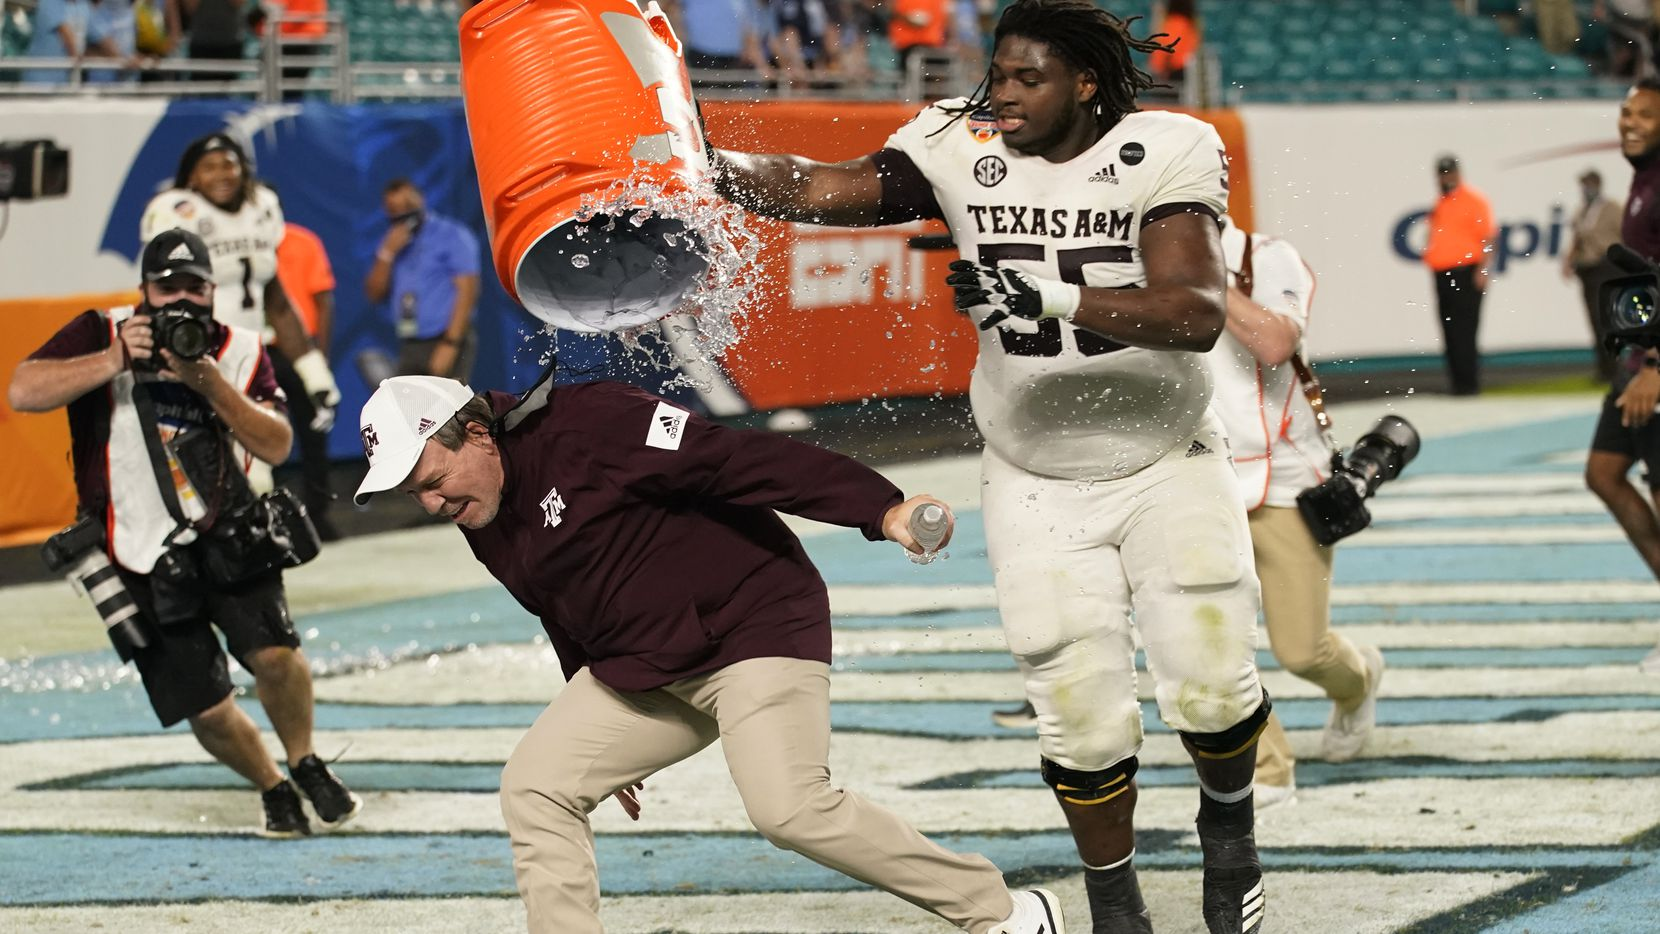 Texas A&M offensive lineman Kenyon Green (55) douses head coach Jimbo Fisher at the end of the Orange Bowl NCAA college football game, Saturday, Jan. 2, 2021, in Miami Gardens, Fla. Texas A&M defeated North Carolina 41-27.